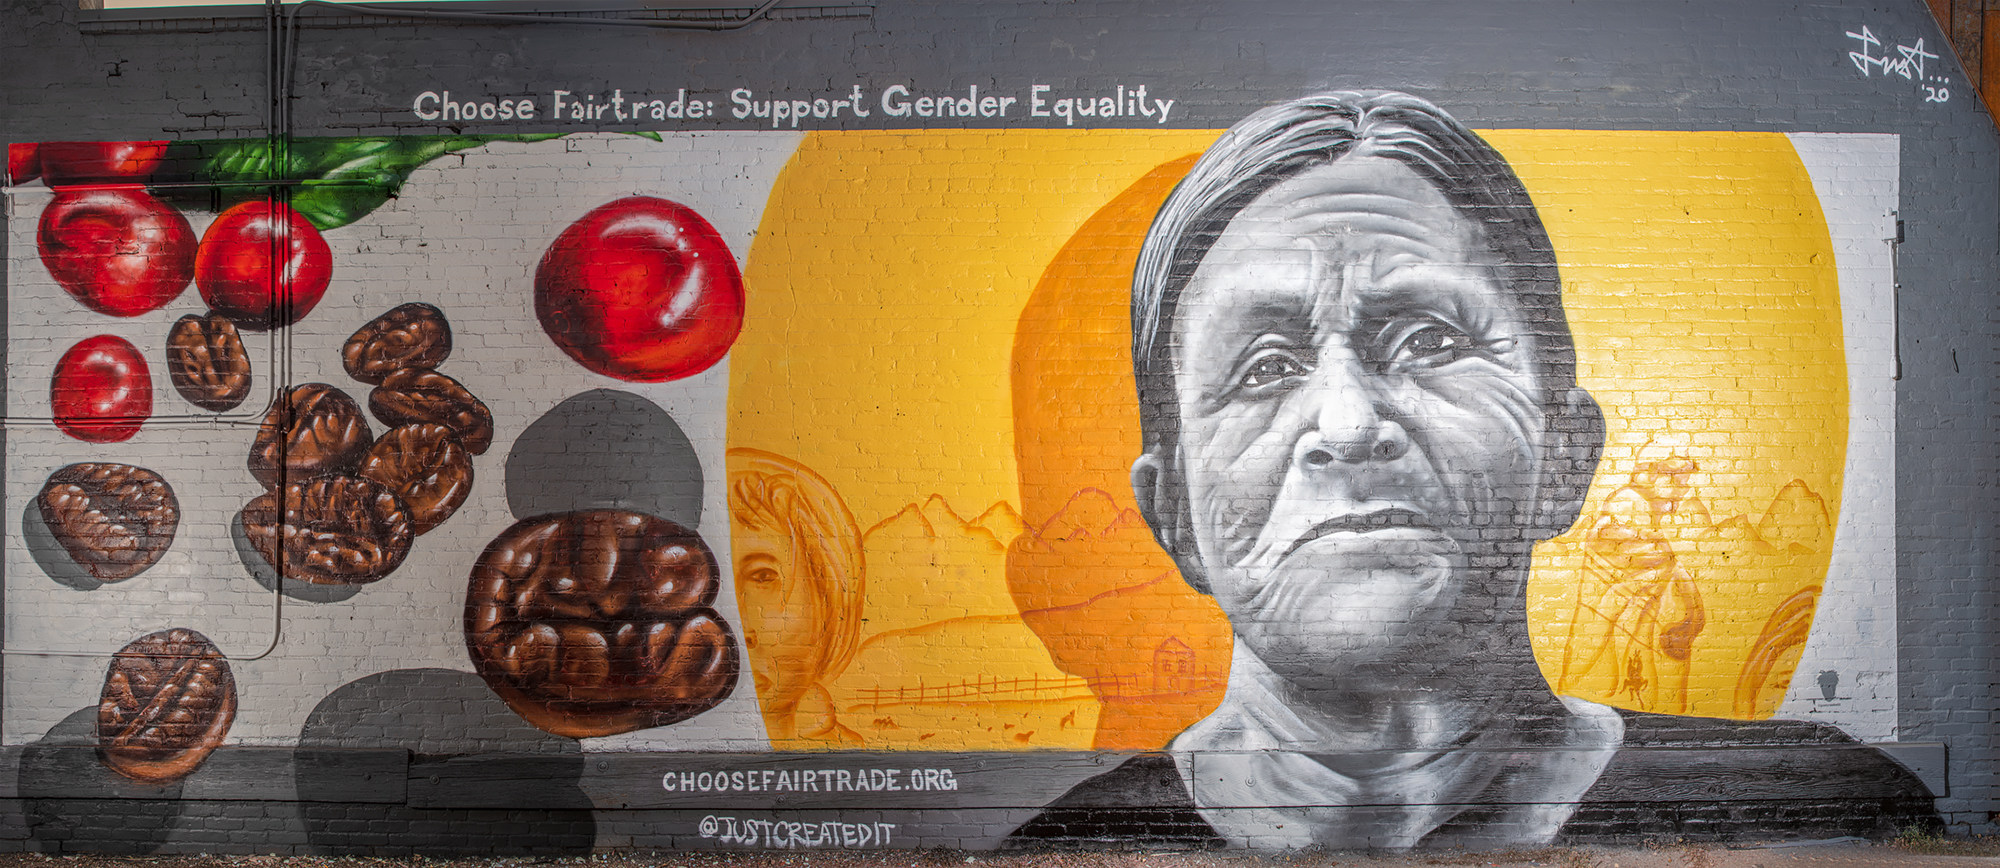 Fairtrade Month Celebrates Gender Equality and Sustainable Food